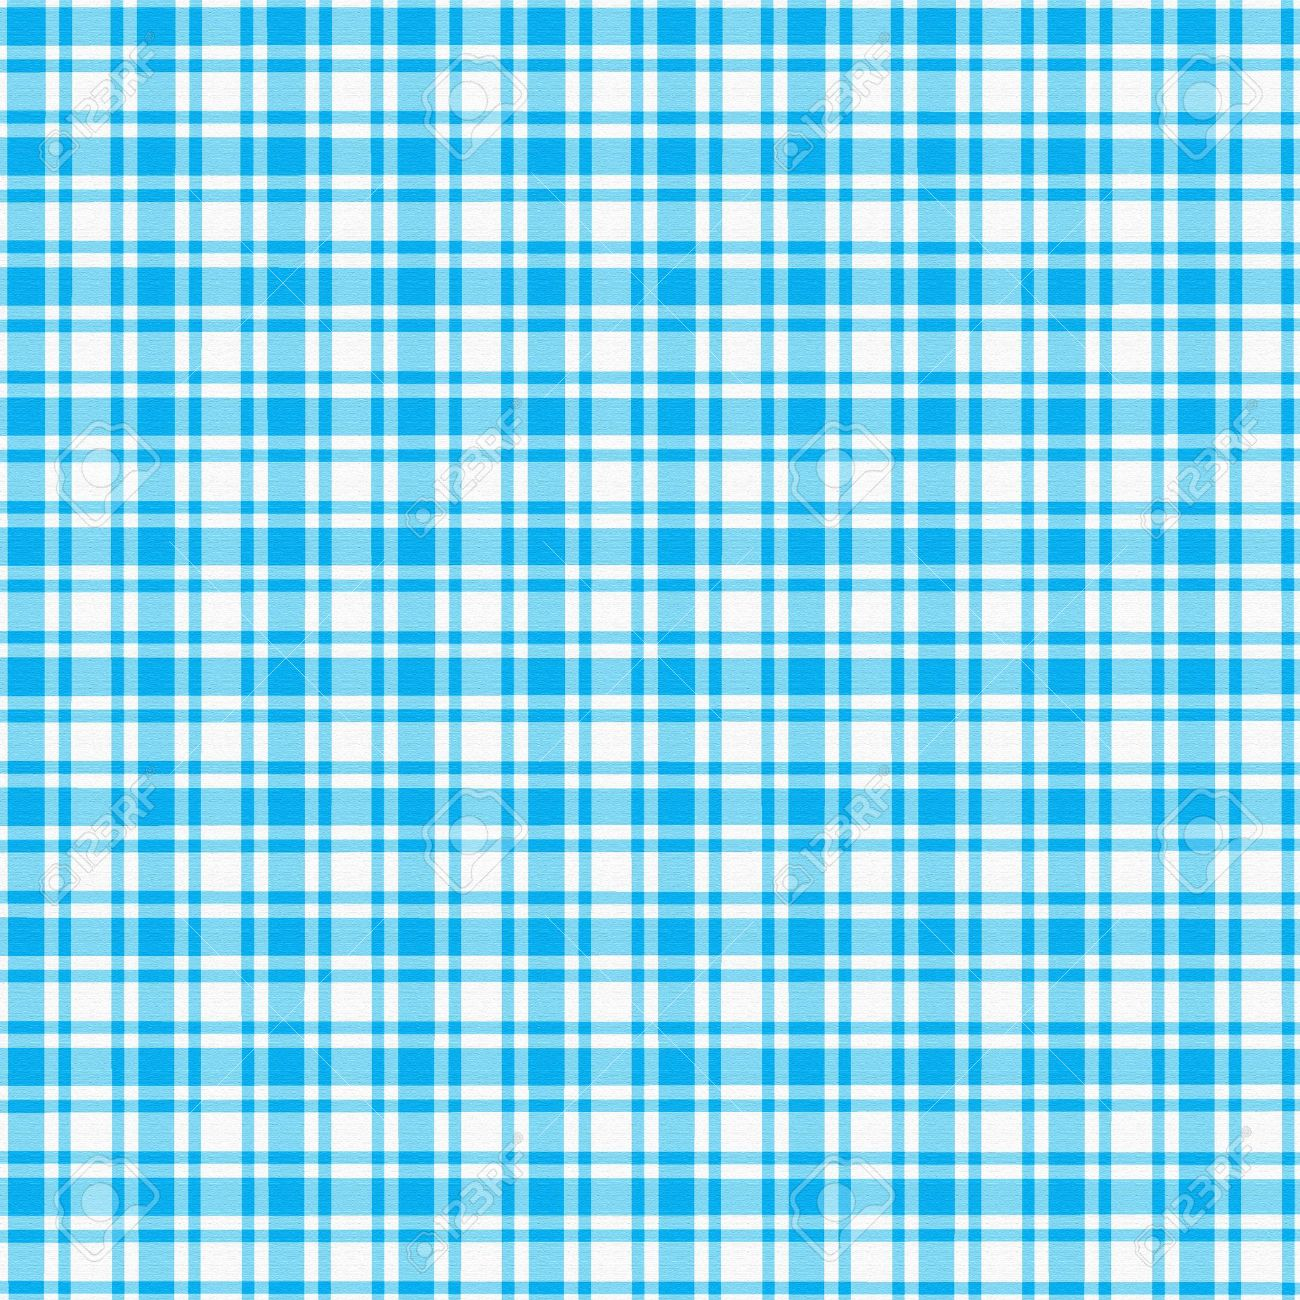 1300x1300 - Blue Plaid 6